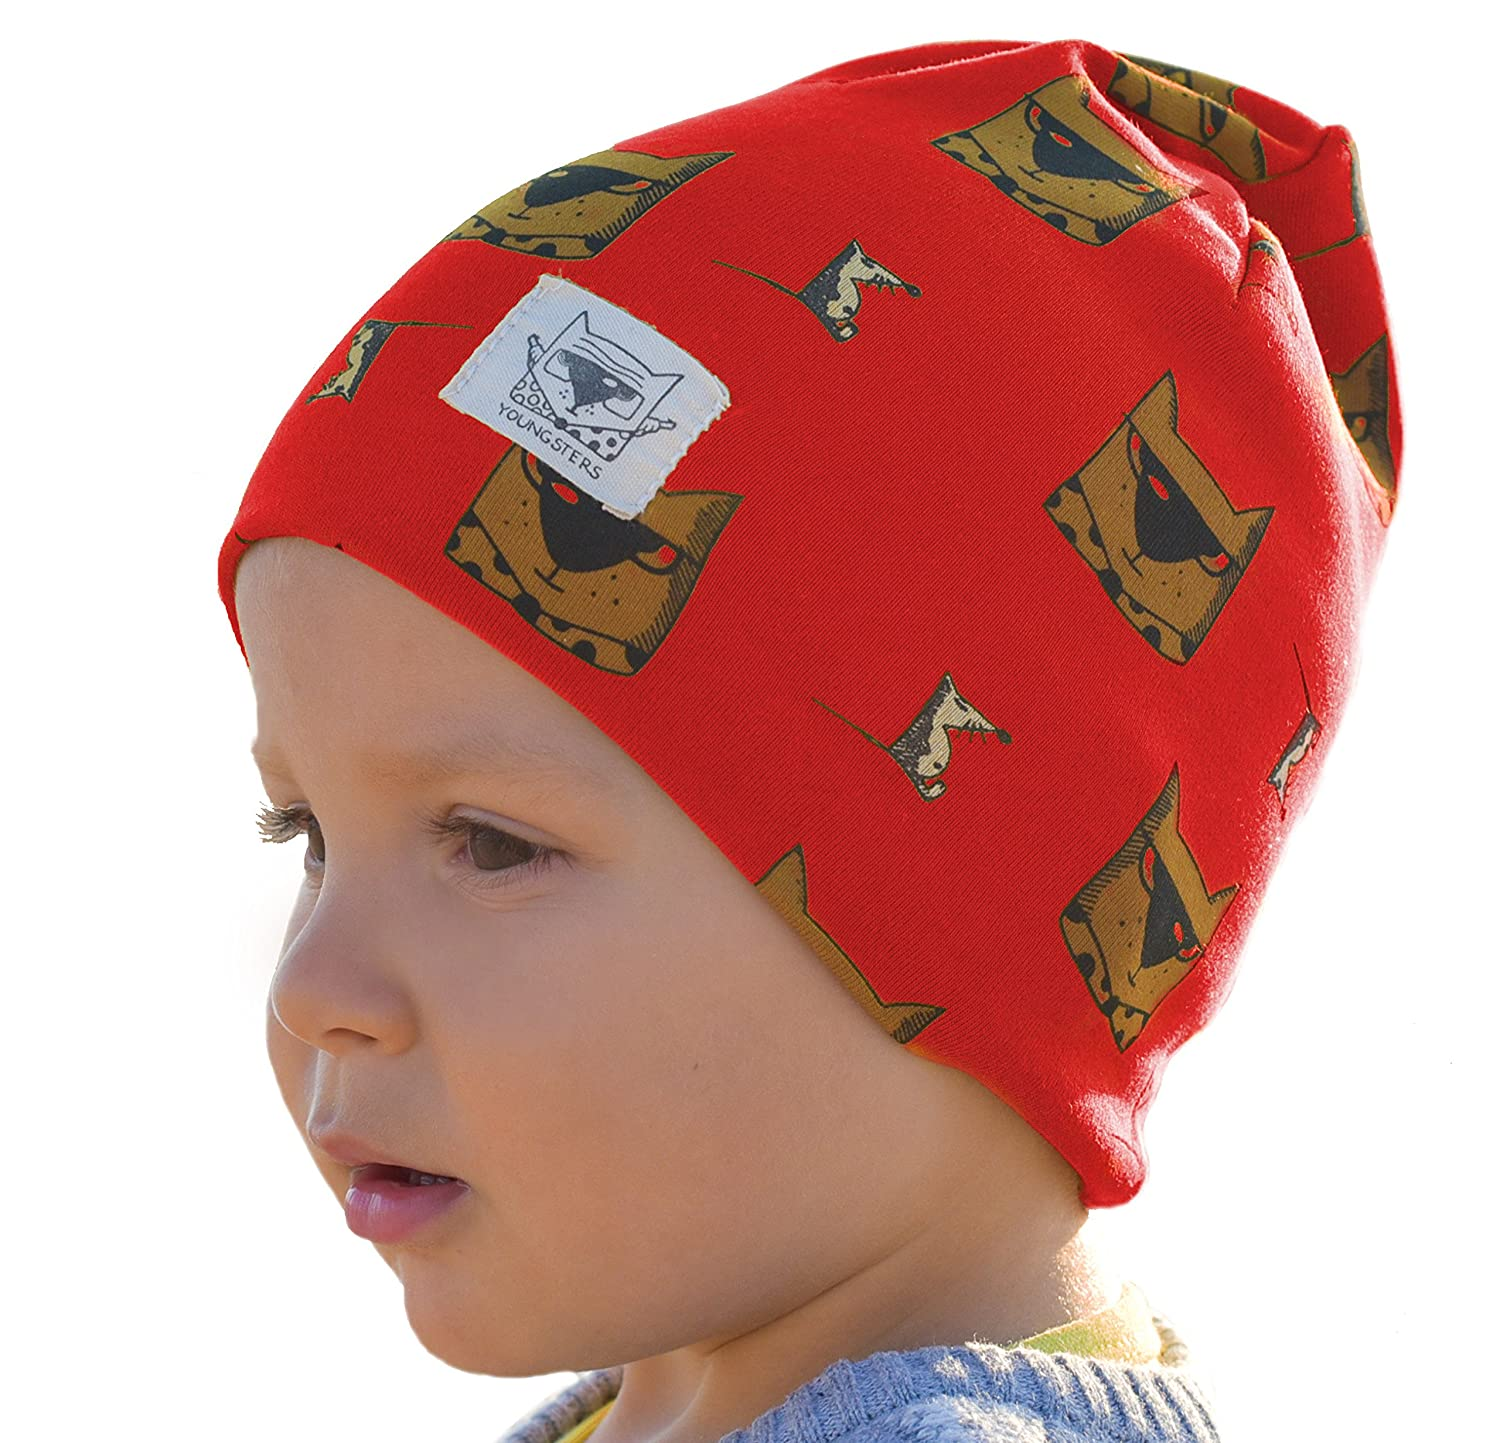 f441f3337 Youngsters Toddler Infant Baby Cotton Soft Cute Knit Kids Hat Beanies Cap  for Boys Girls